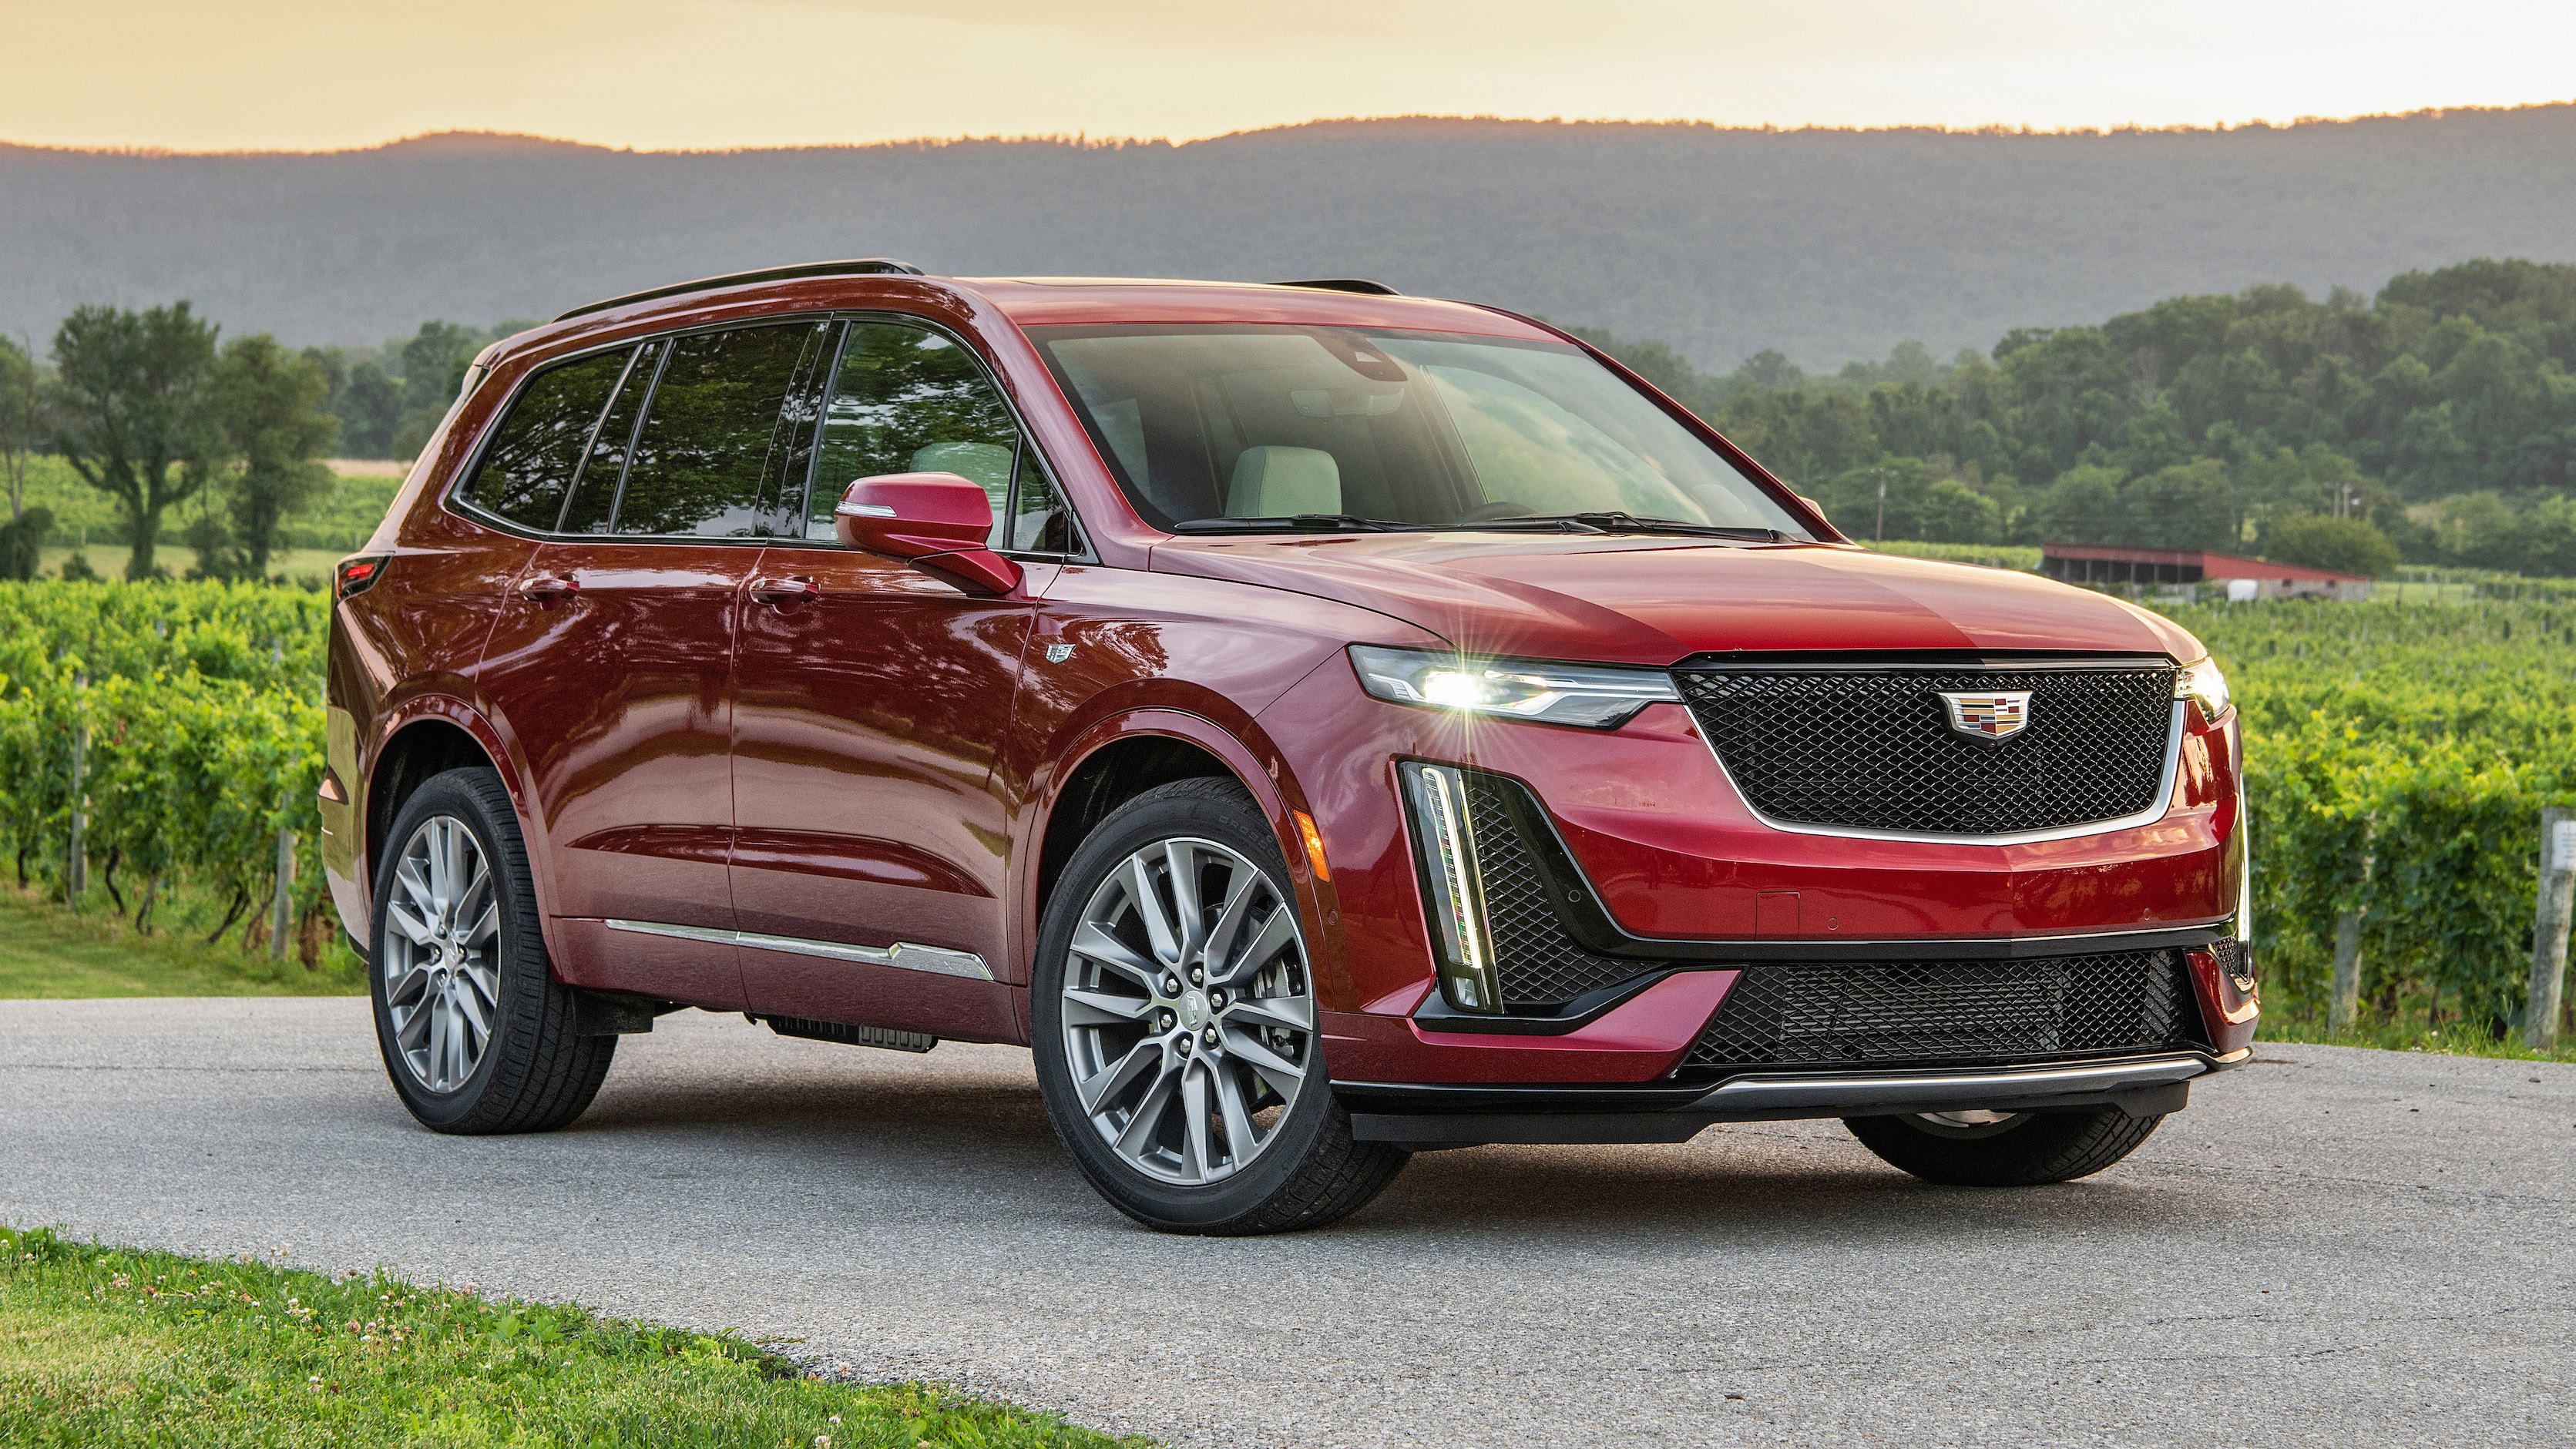 2020 Cadillac XT6 Sport First Drive Review | What's new, style and driving impressions | Autoblog